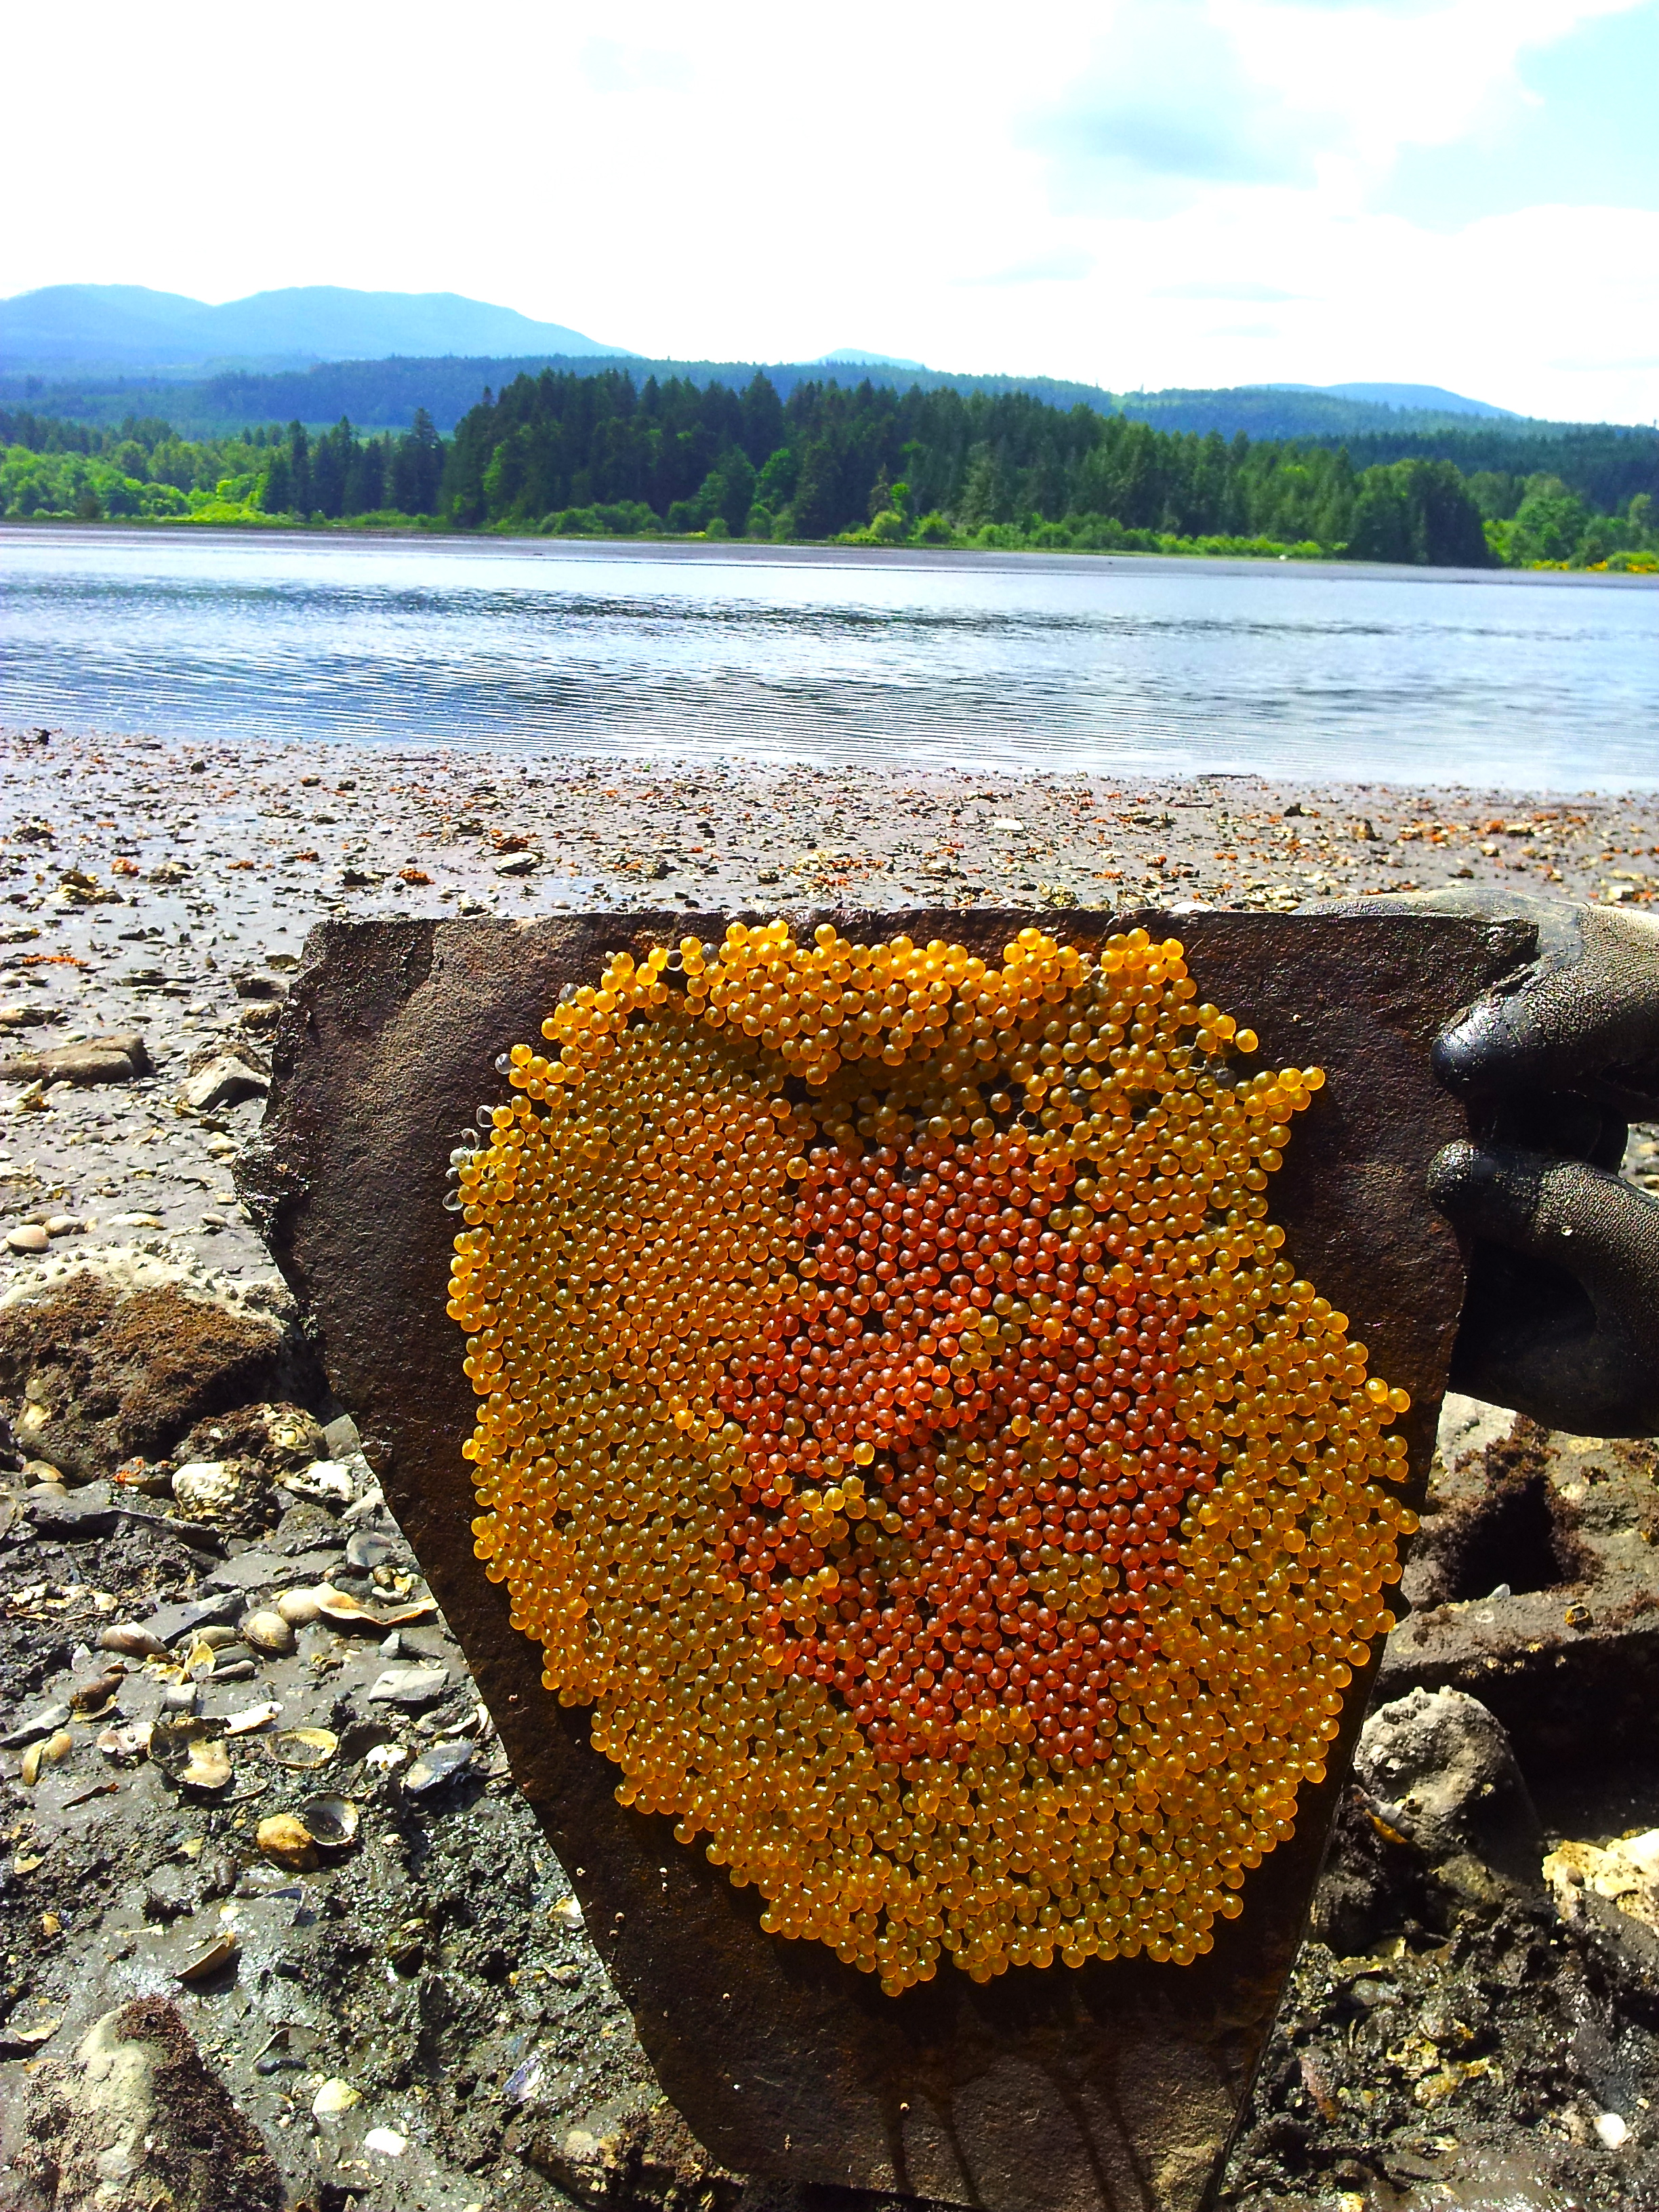 Plainfin midshipman fish eggs on a tile in an intertidal zone in British Columbia (photo credit: Aneesh Bose)